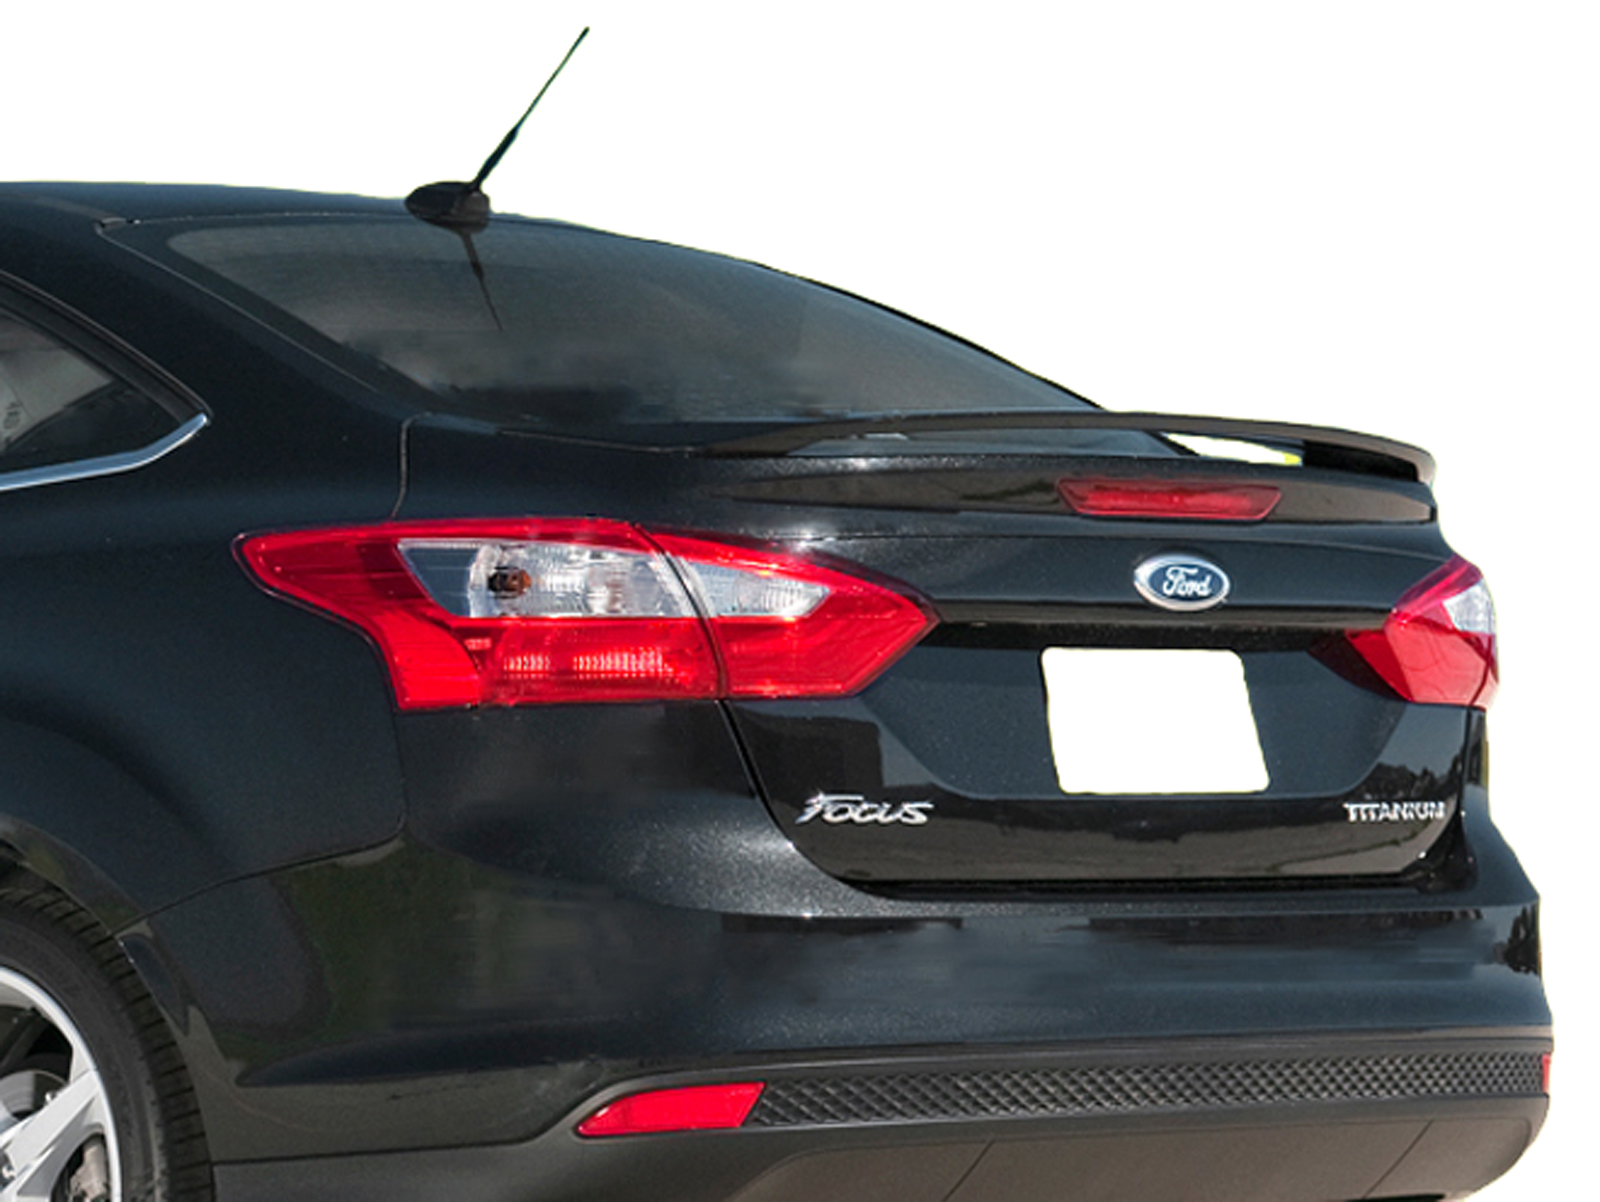 Ford Focus 4-Door Sedan Factory Style Spoiler 2012-2014